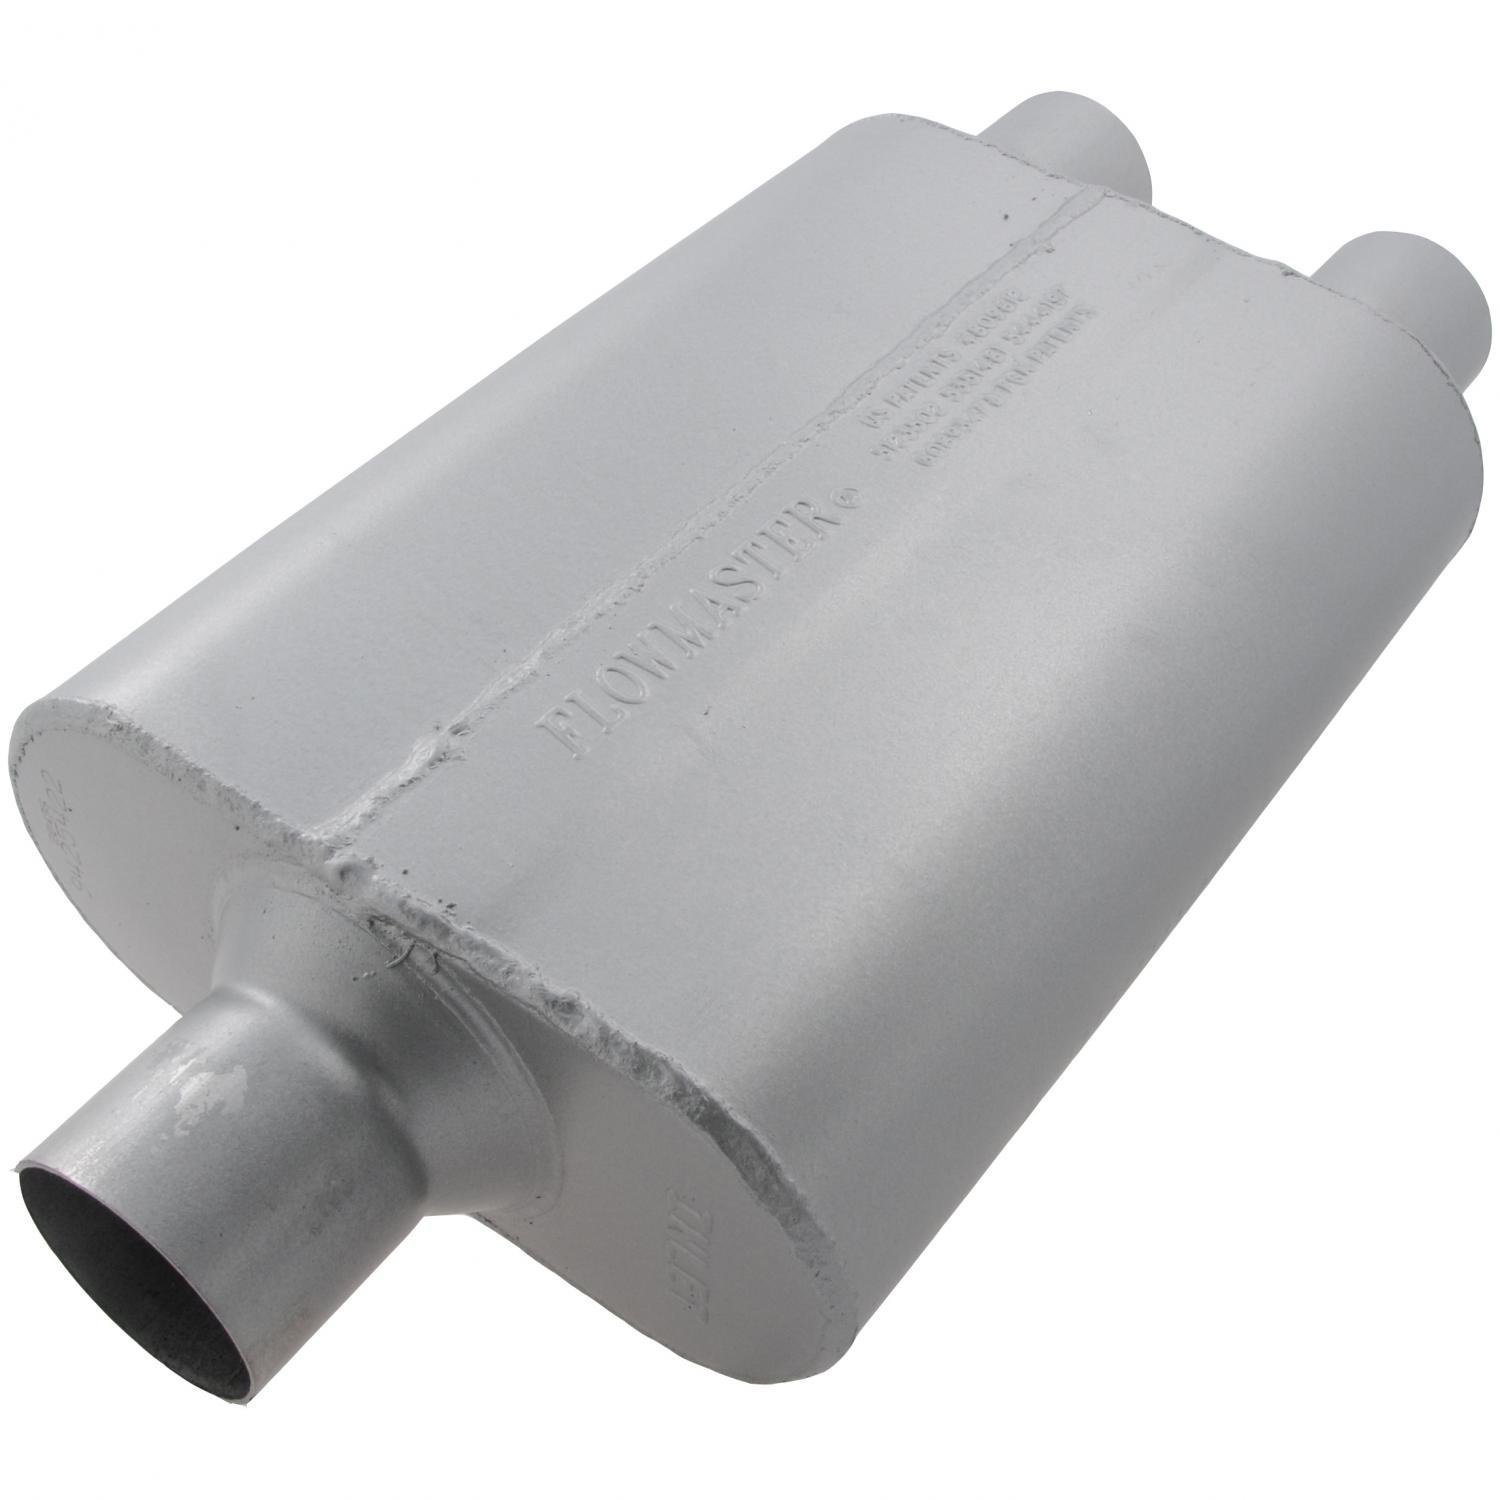 Flowmaster 9425422 40 Delta Flow Muffler Aggressive Sound 2.50 Center IN 2.25 Dual OUT